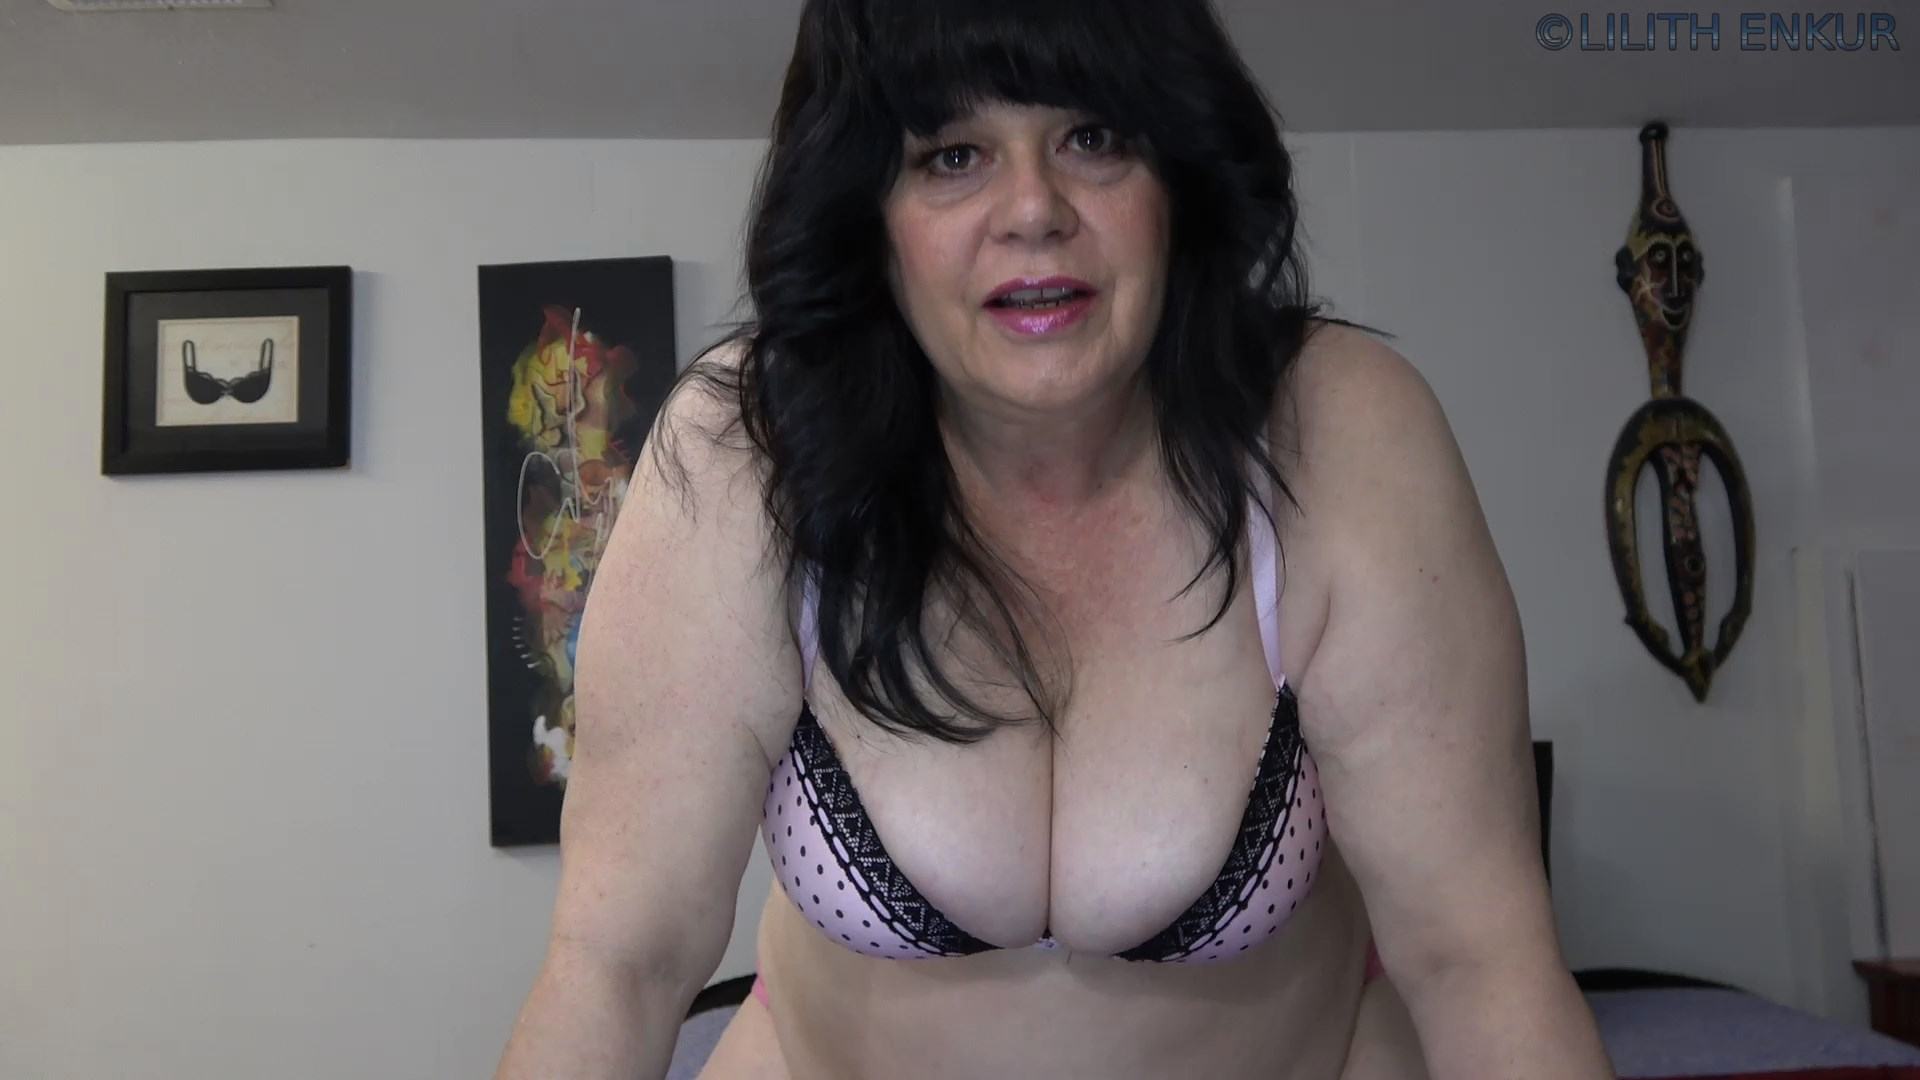 Lilith Enkur - Step Mom Wants You To Herself